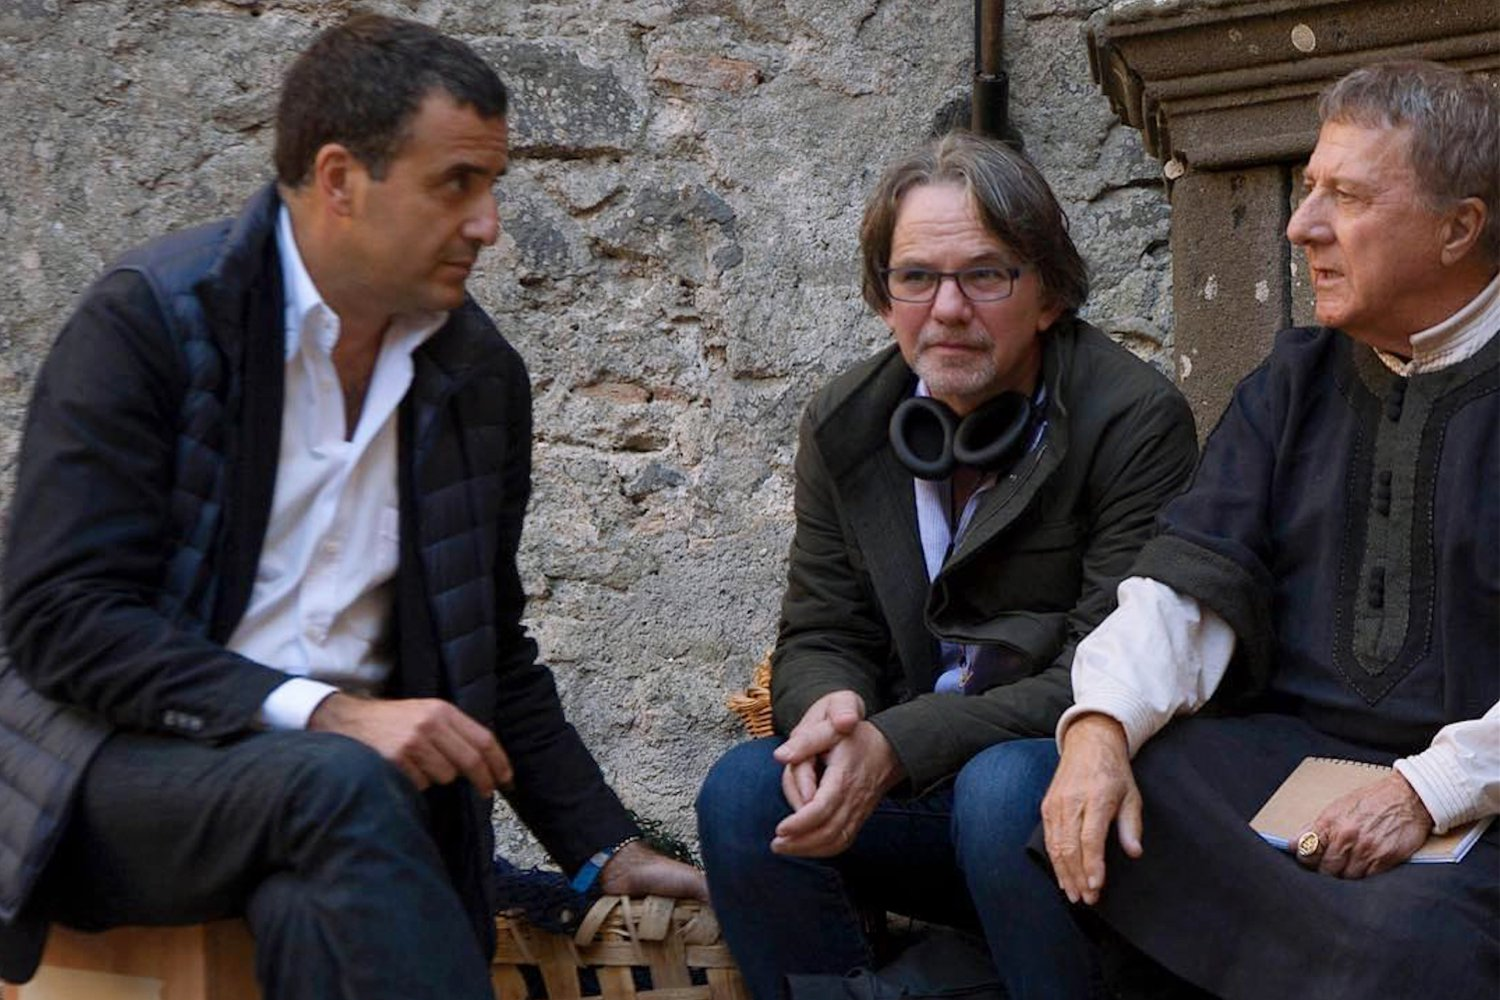 Frank Spotnitz and Dustin Hoffman on set filming Medici: Masters of Florence